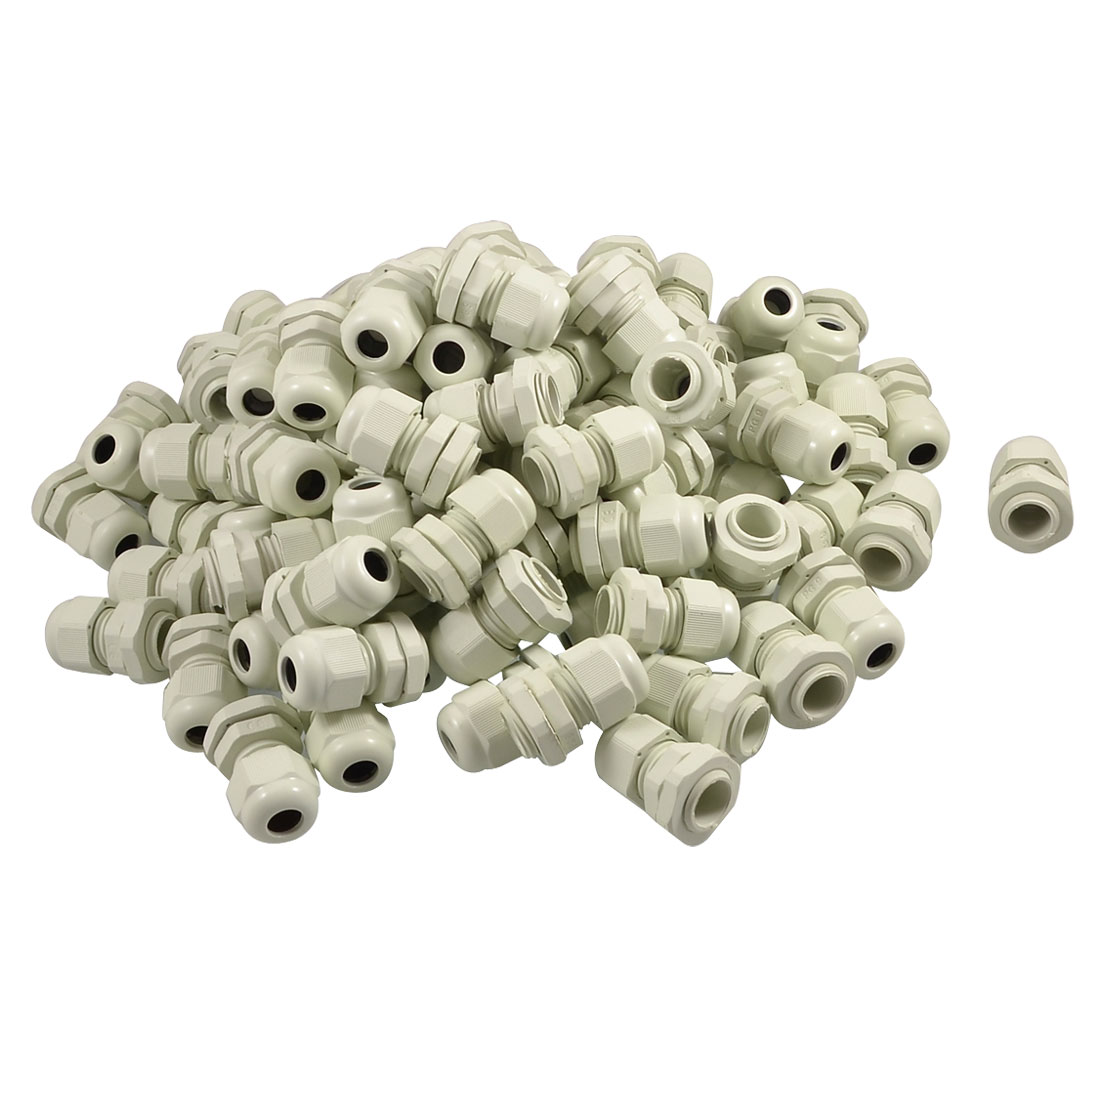 4mm-8mm White Plastic Waterproof Cable Gland Connector 100 Pcs